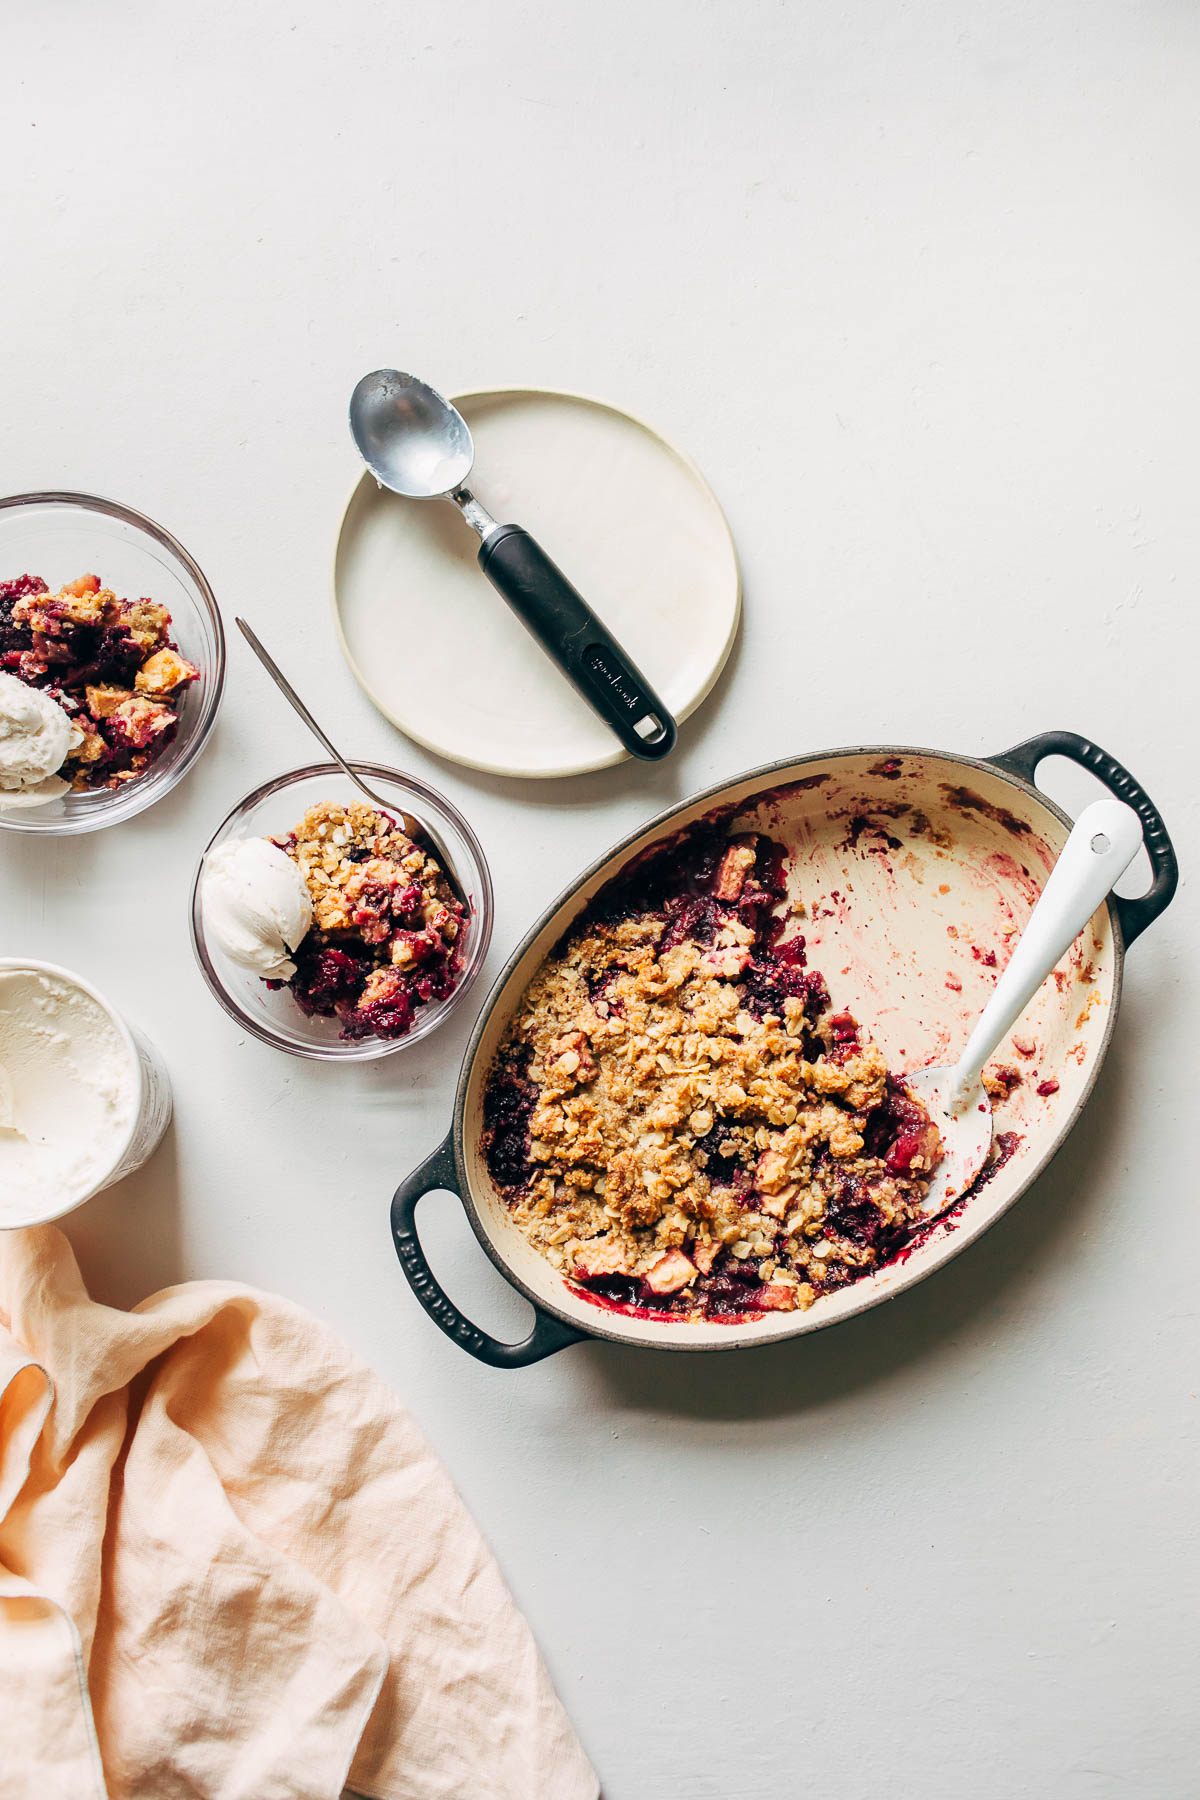 A pan of blackberry and apple crisp, and two bowls of crisp topped with ice cream, on a white surface.